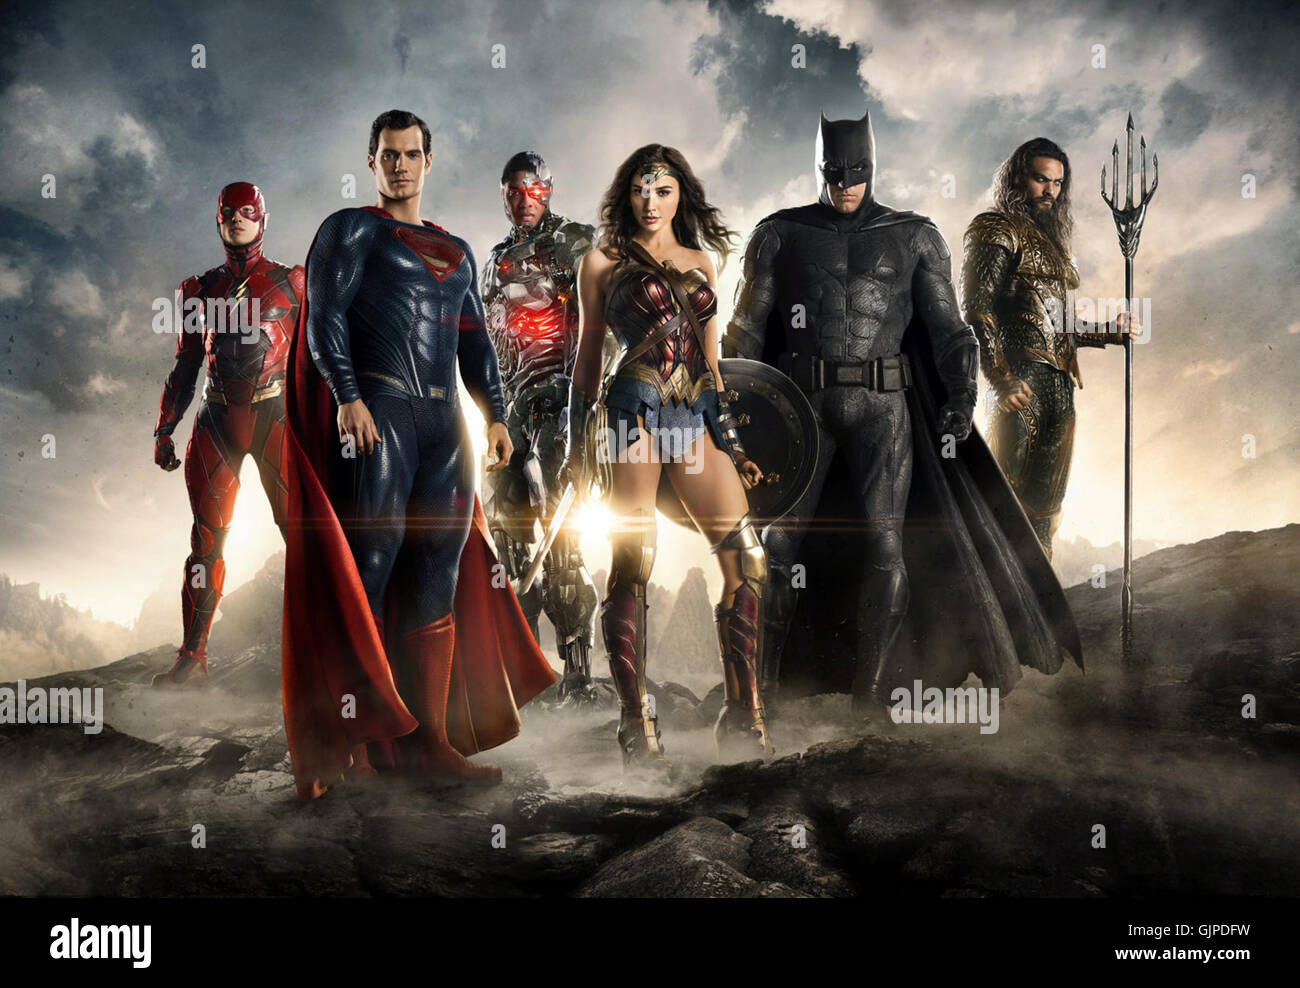 Justice League is an upcoming American superhero film based on the DC Comics superhero team of the same name, distributed - Stock Image